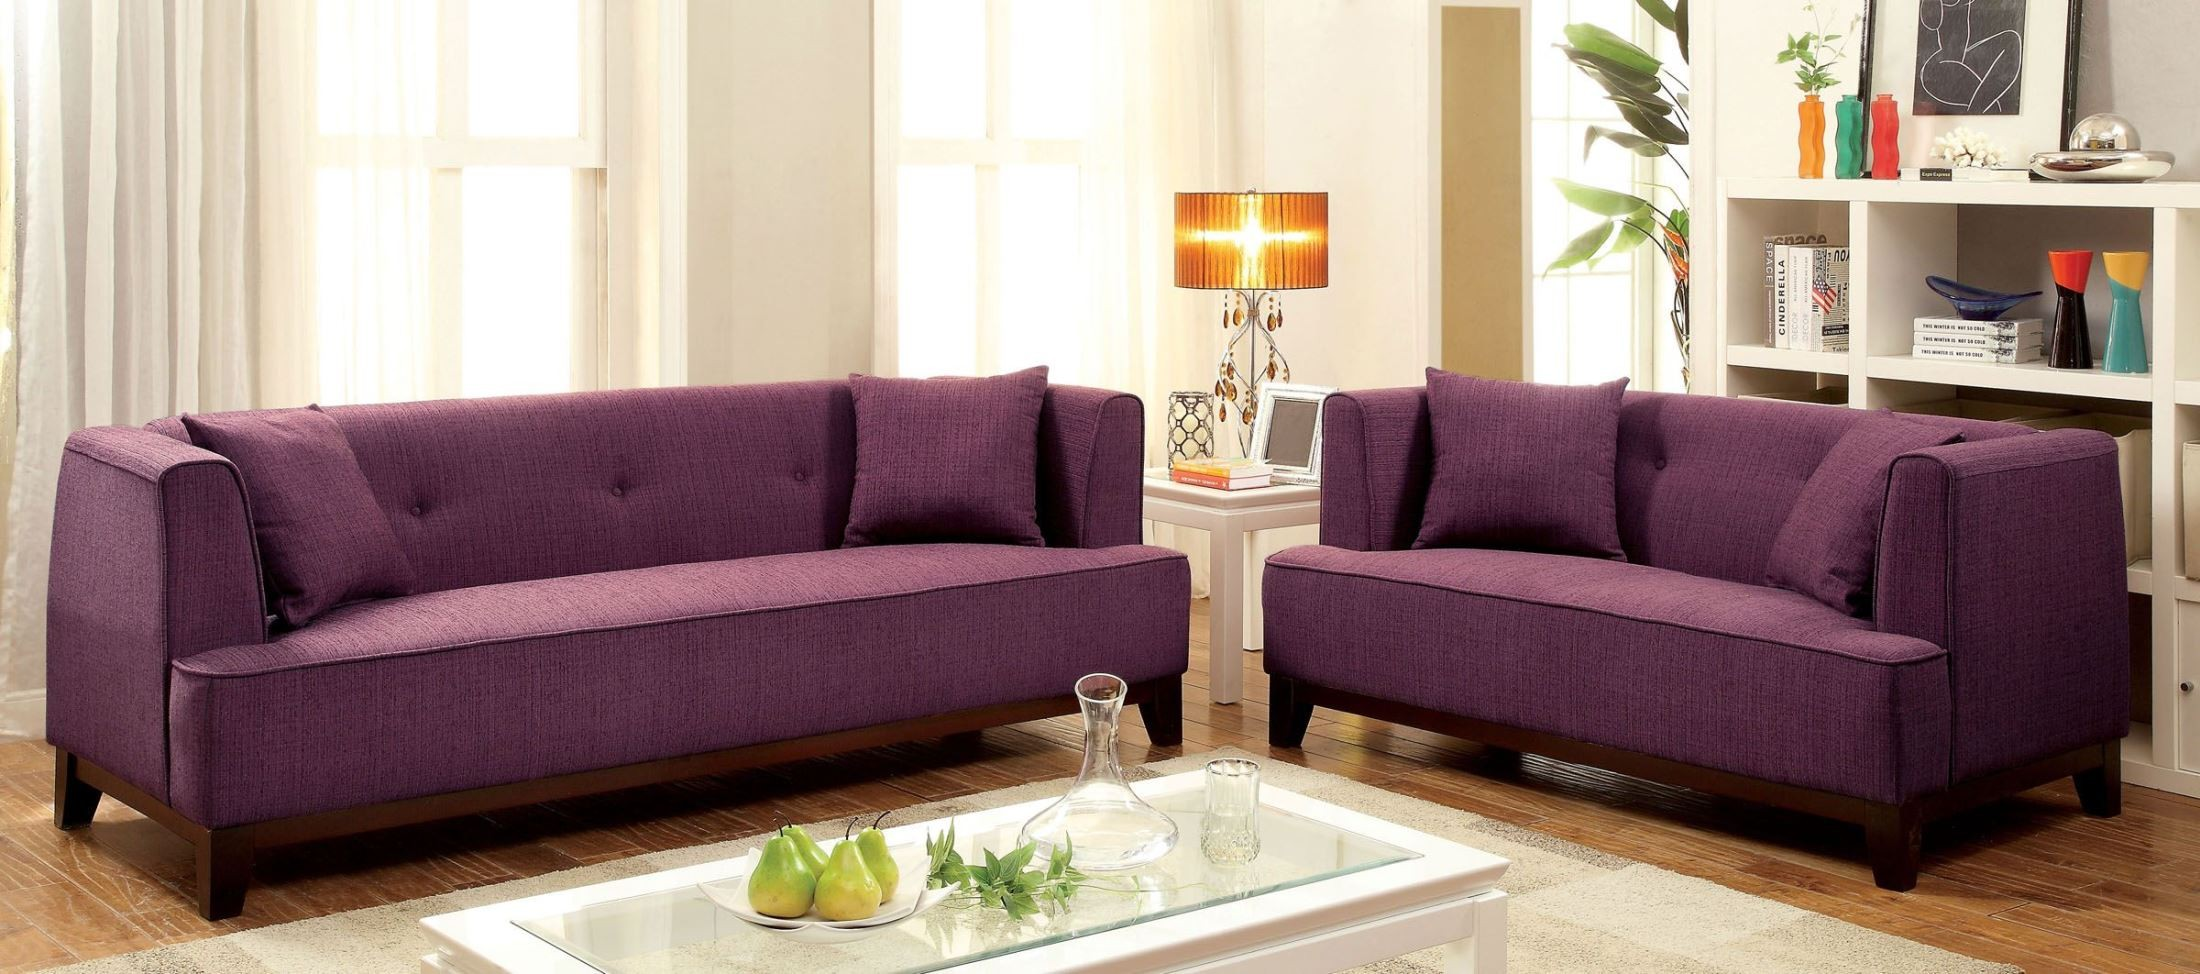 Sofia purple sofa from furniture of america cm6761pr sf for Purple sofa